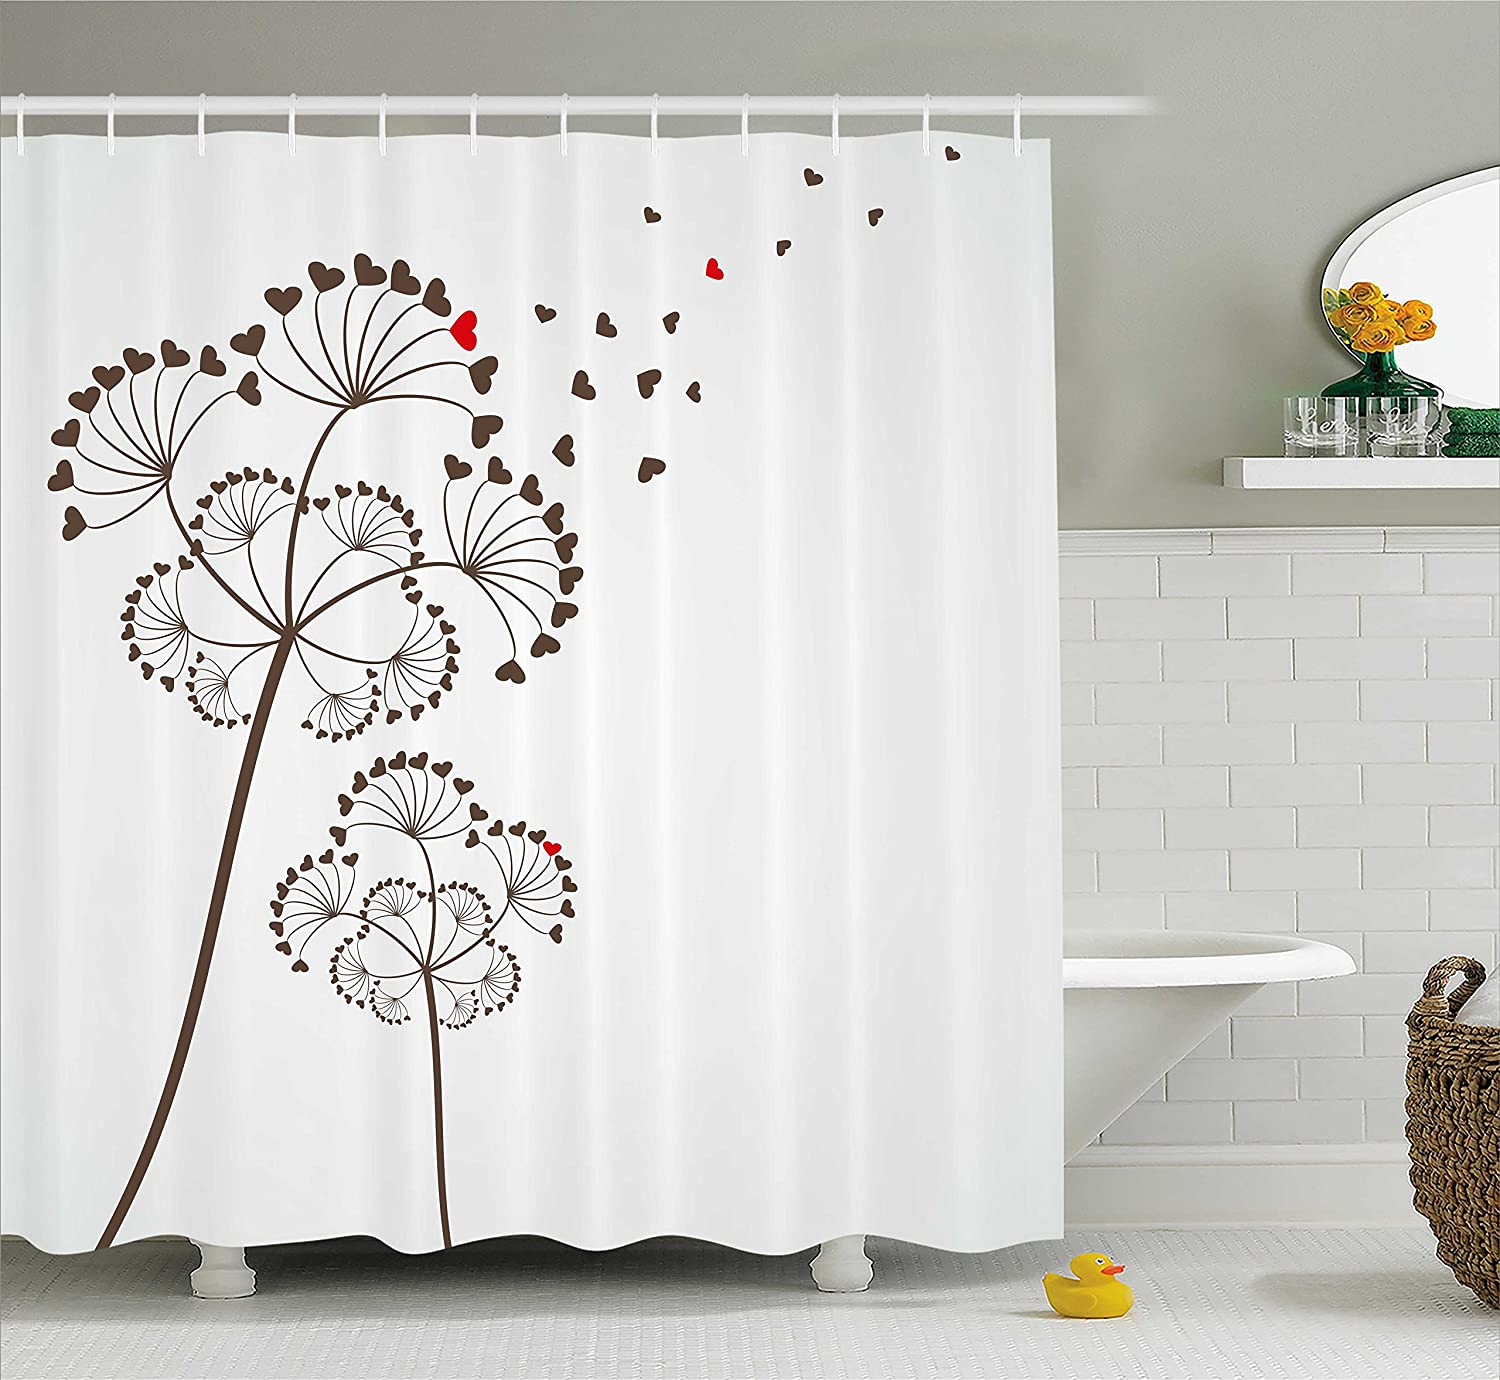 Ambesonne Valentine Shower Curtain Stylized Delicate Dandelions Heart Shaped Petals Romantic In Love Theme Fabric Bathroom Decor Set With Hooks